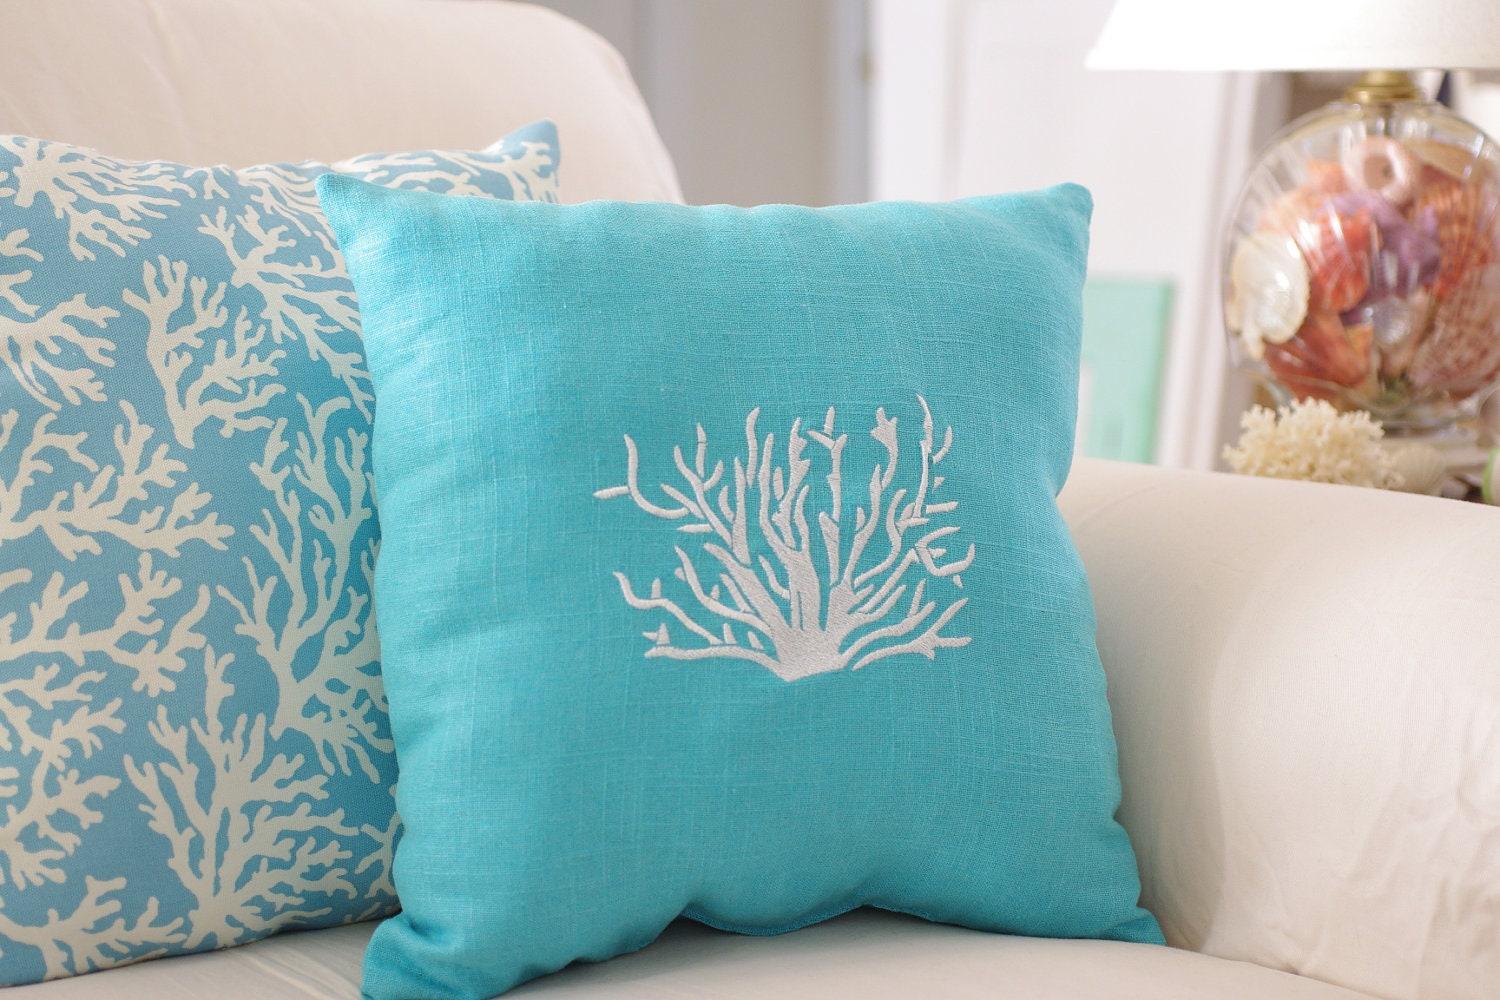 beach themed sofa pillows tufted chaise lounge decor turquoise blue throw pillow by bytheseashoredecor